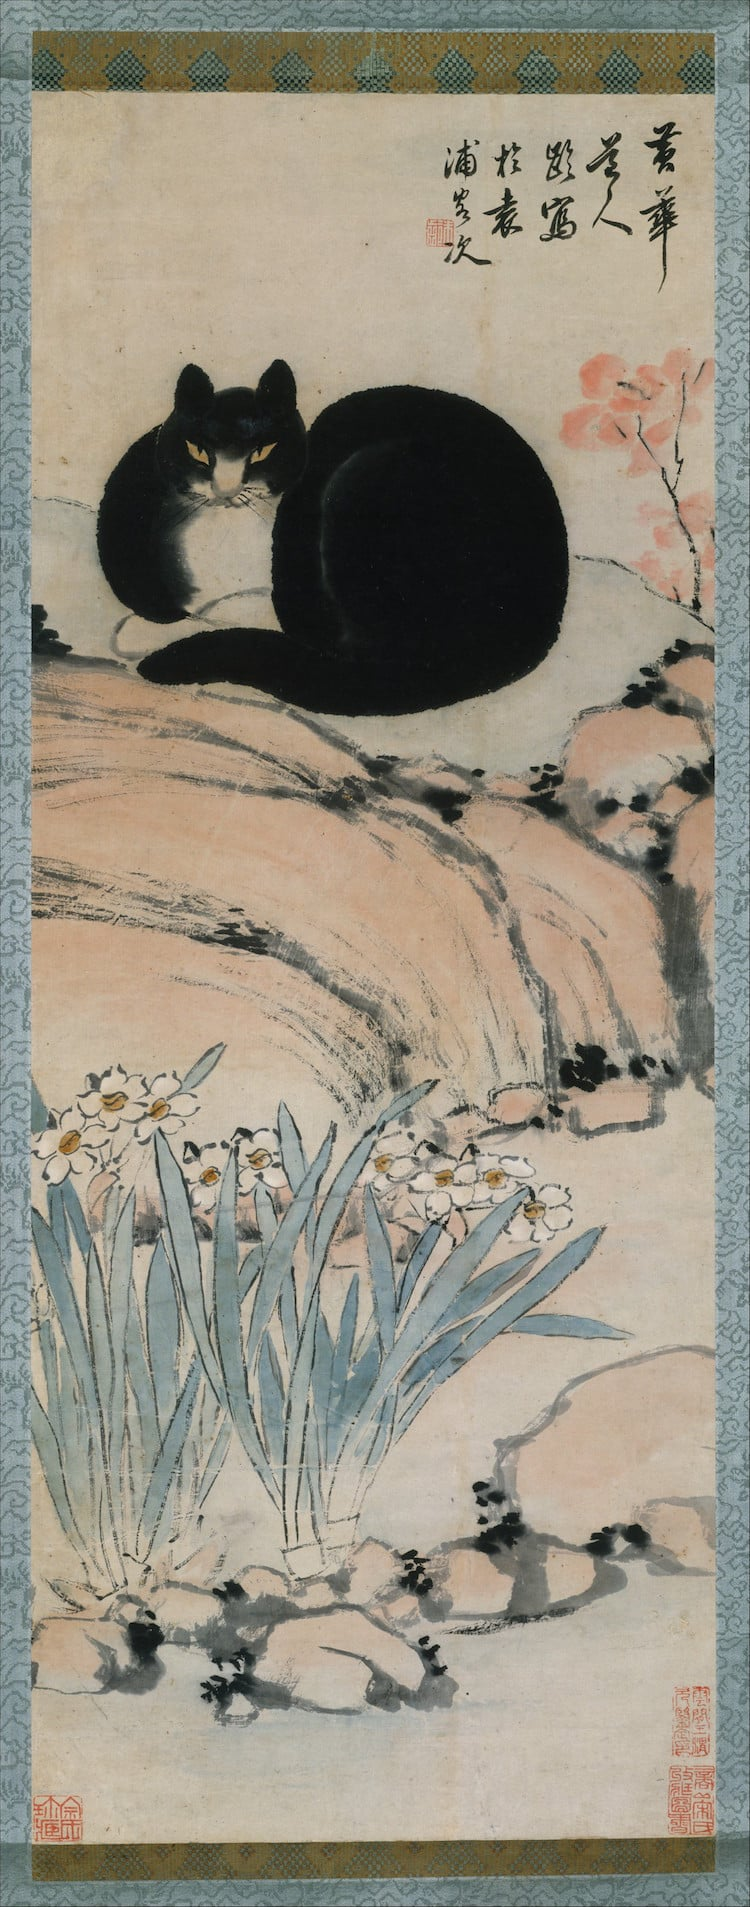 Cats in Art: A Look at Art History Movements That Feature Cat Art